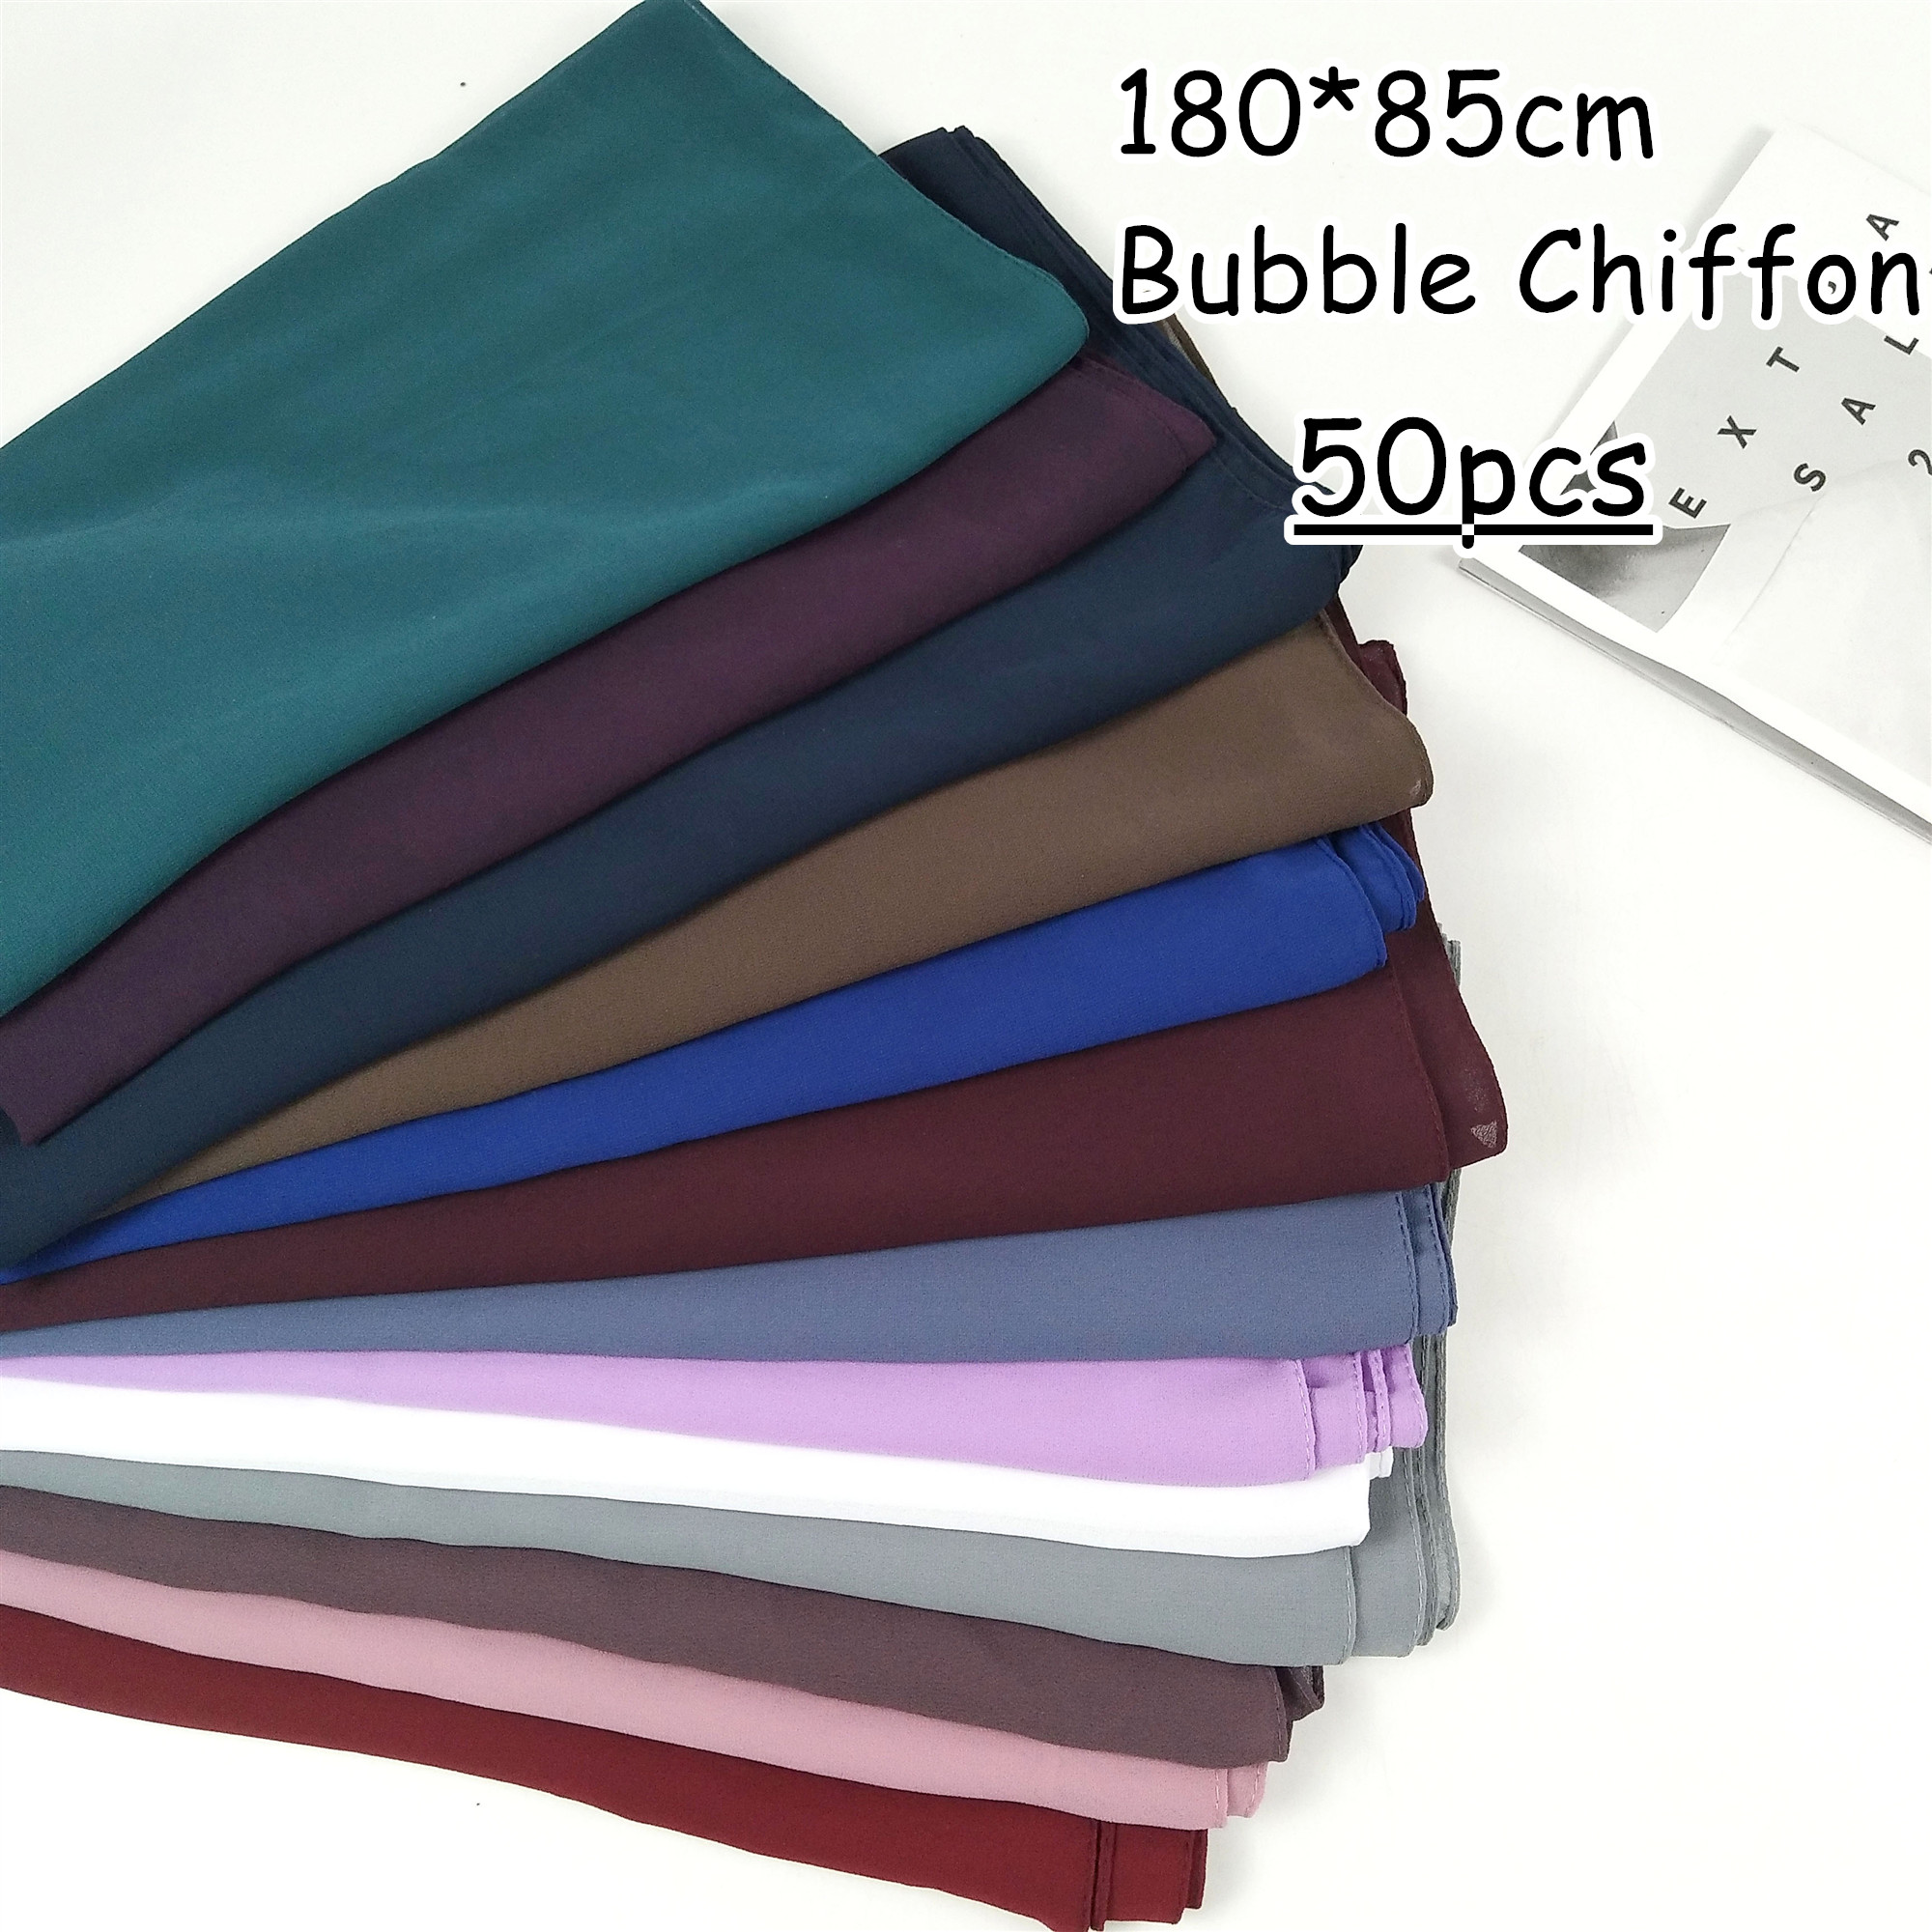 A23  50pcs Big Size 180*85cm  Top Sale   Plain Bubble Chiffon Hijab Headband  Shawl  Summer Muslim Scarves Scarf